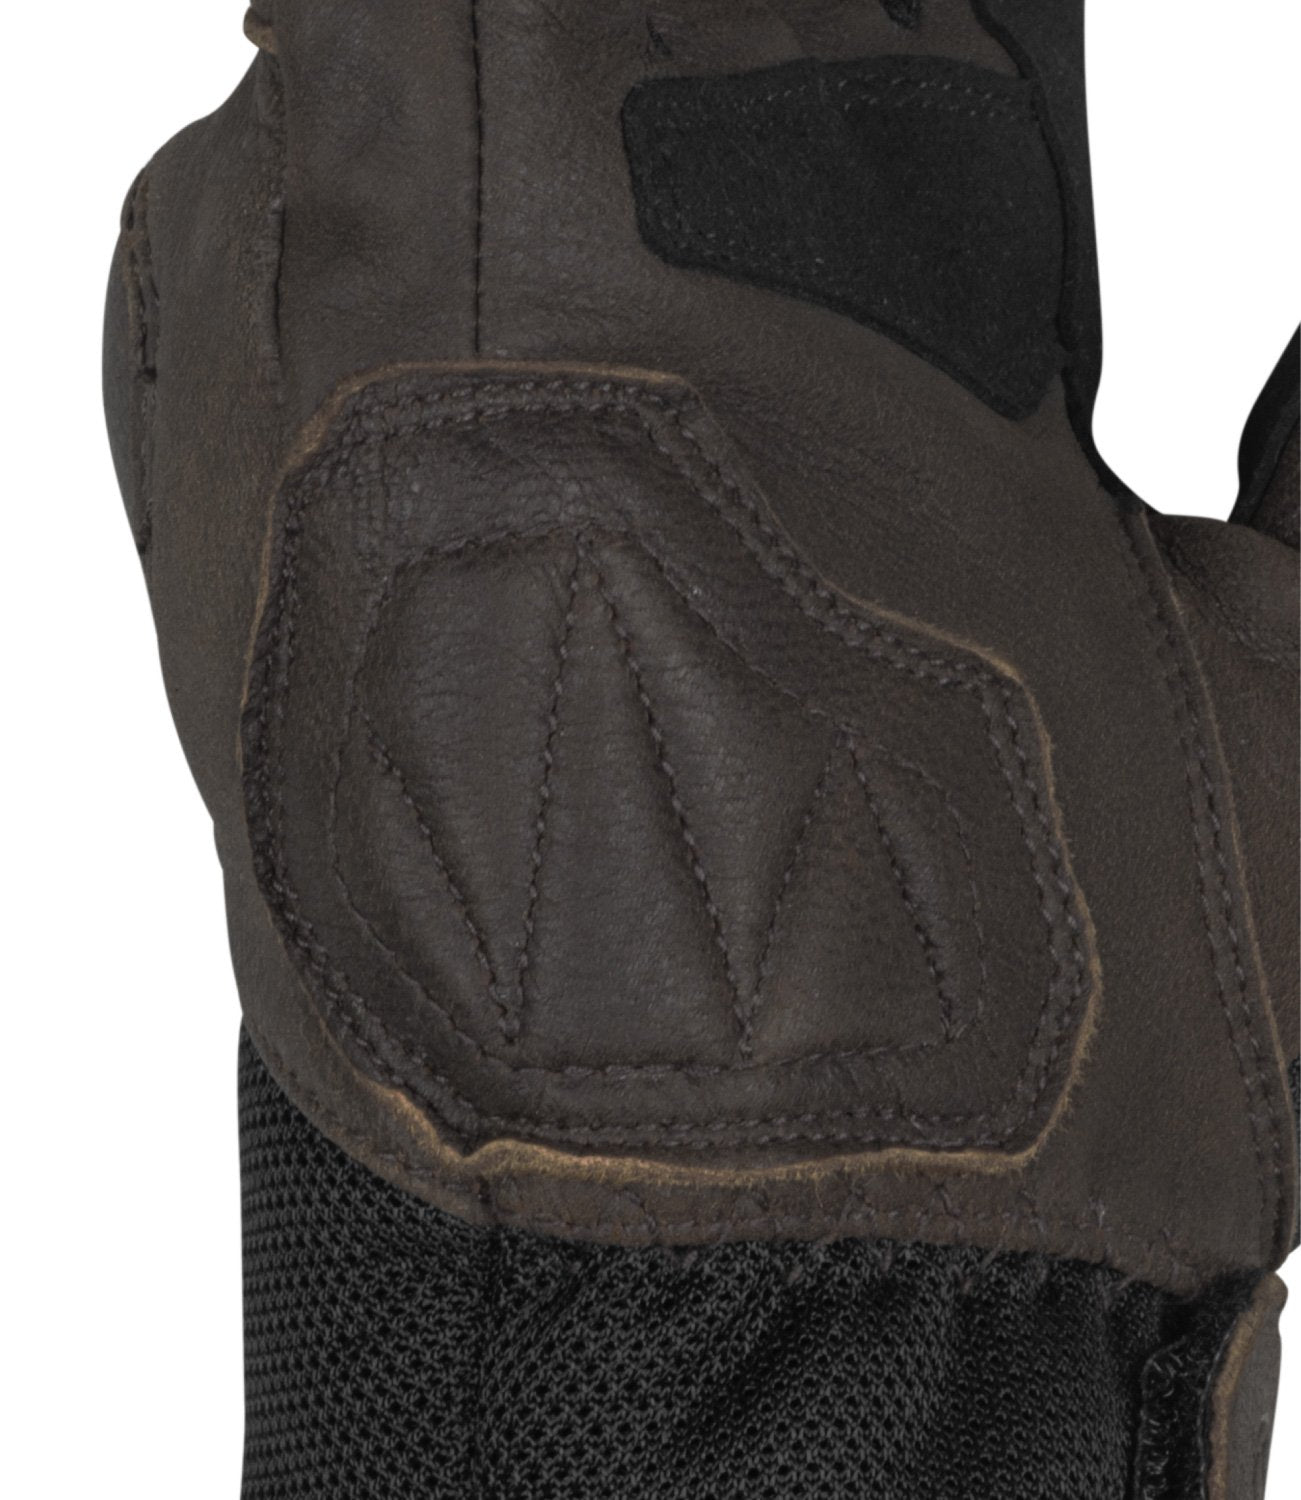 Rynox Urban Gloves Brown 4